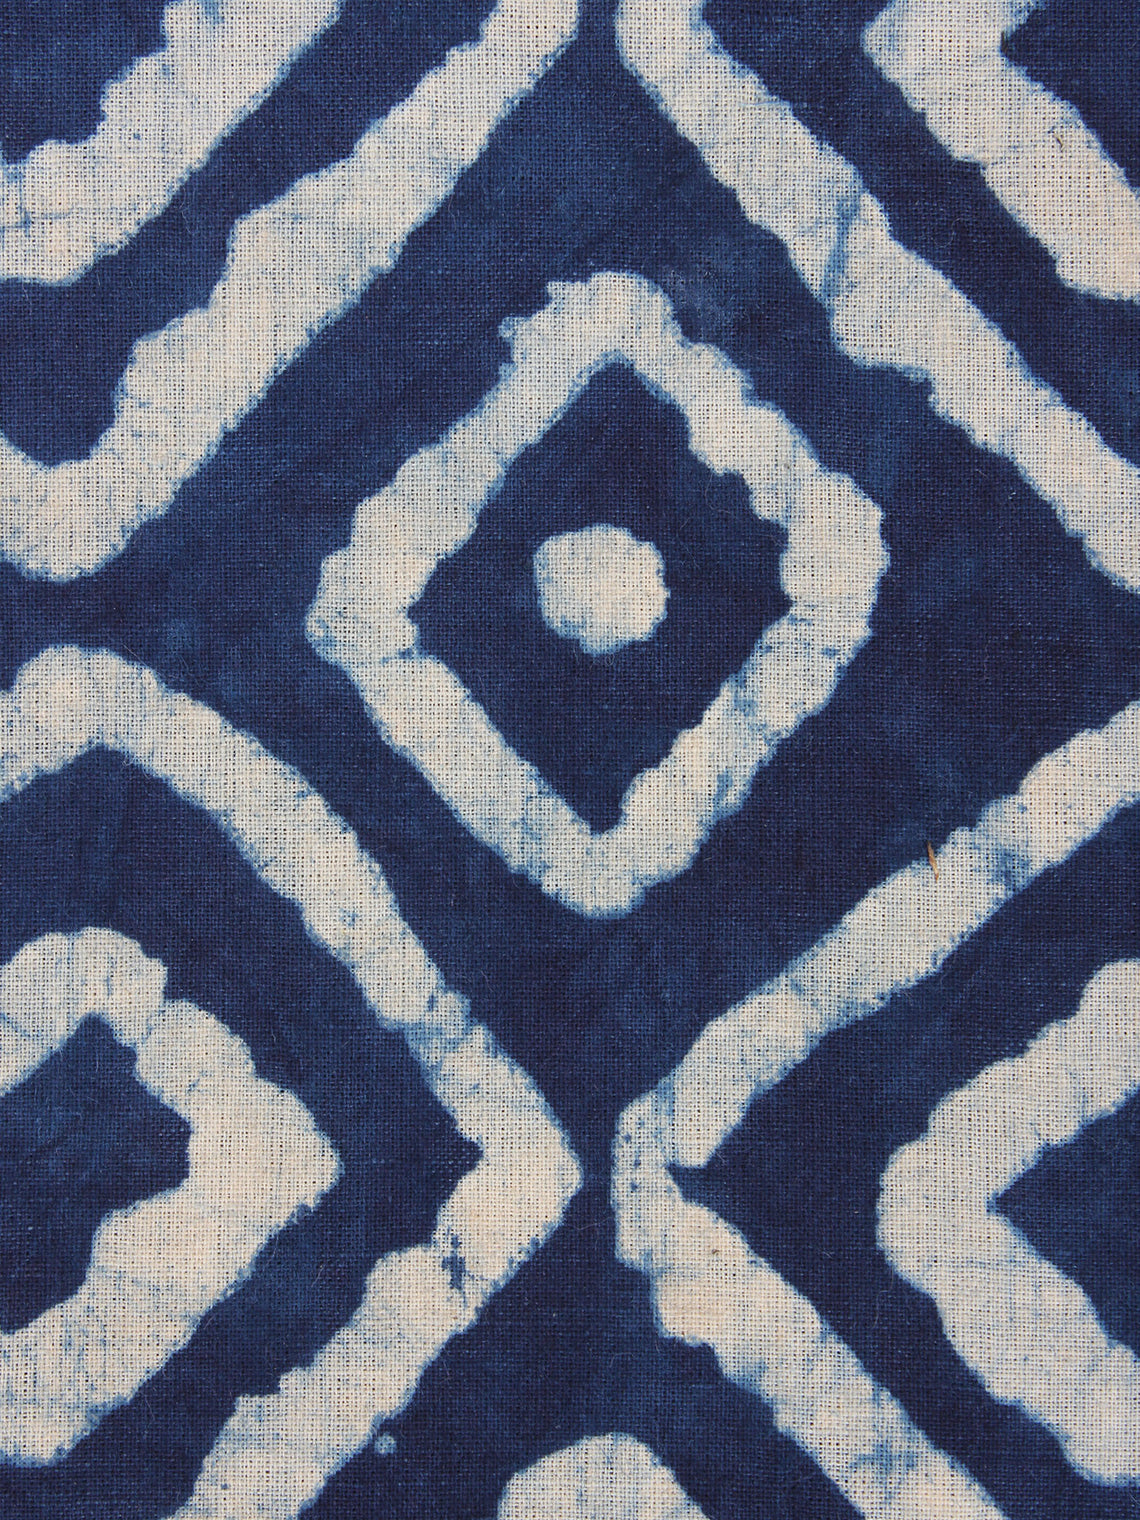 Indigo White Hand Block Printed Cotton Fabric Per Meter - F0916354